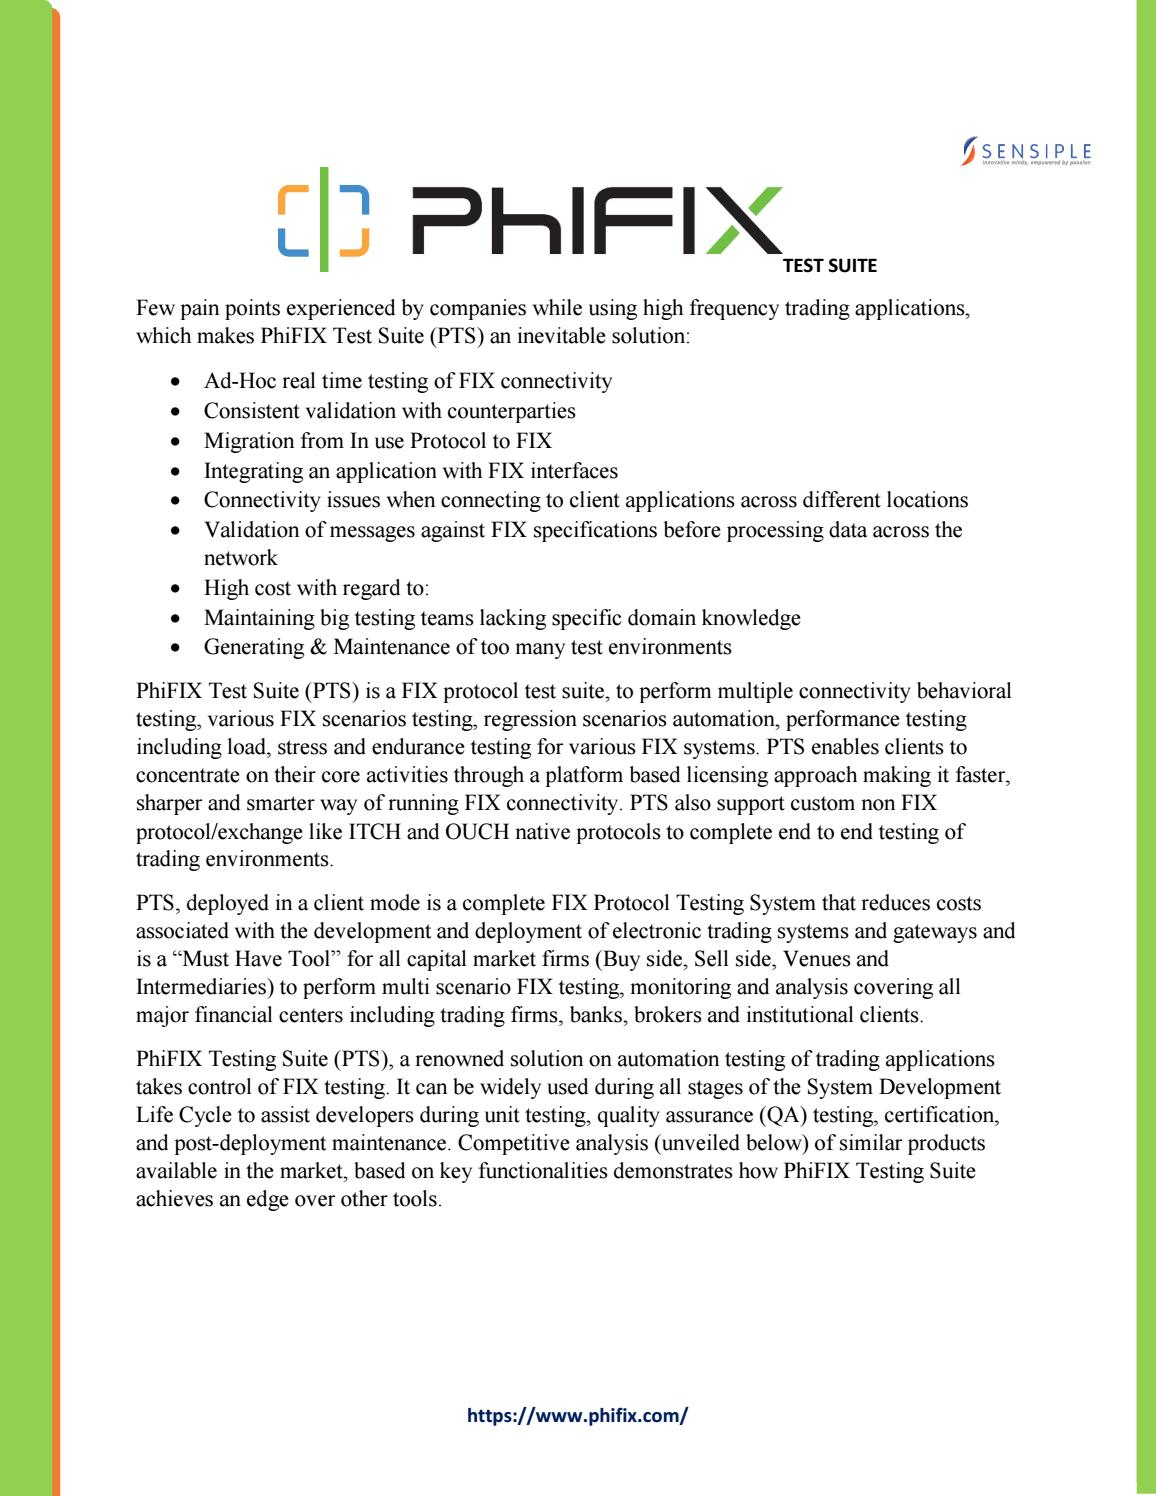 An ultimate solution for comprehensive FIX Testing -Phifix Test